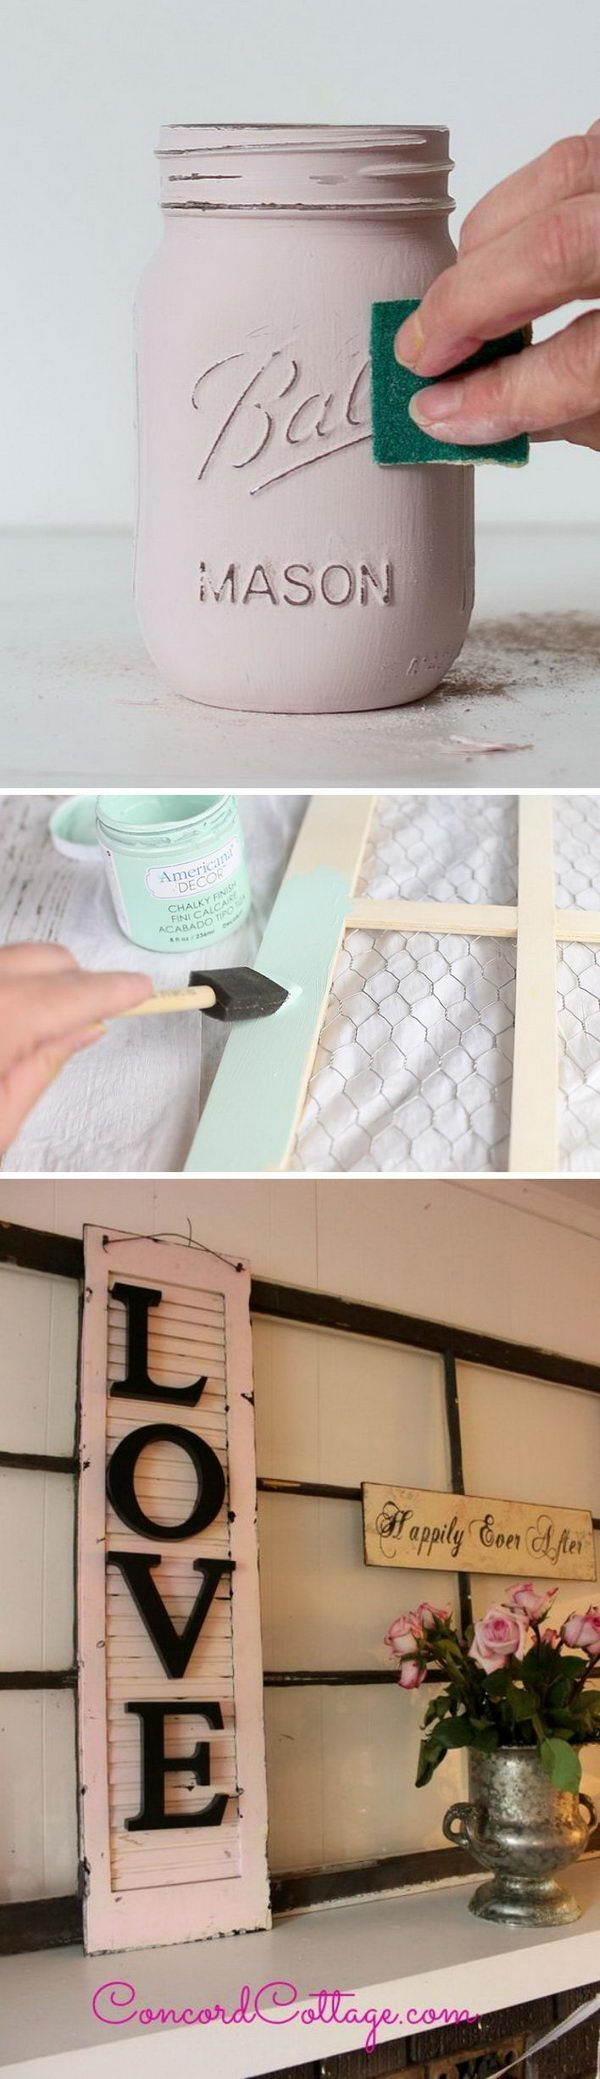 55 awesome shabby chic decor diy ideas u0026 projects